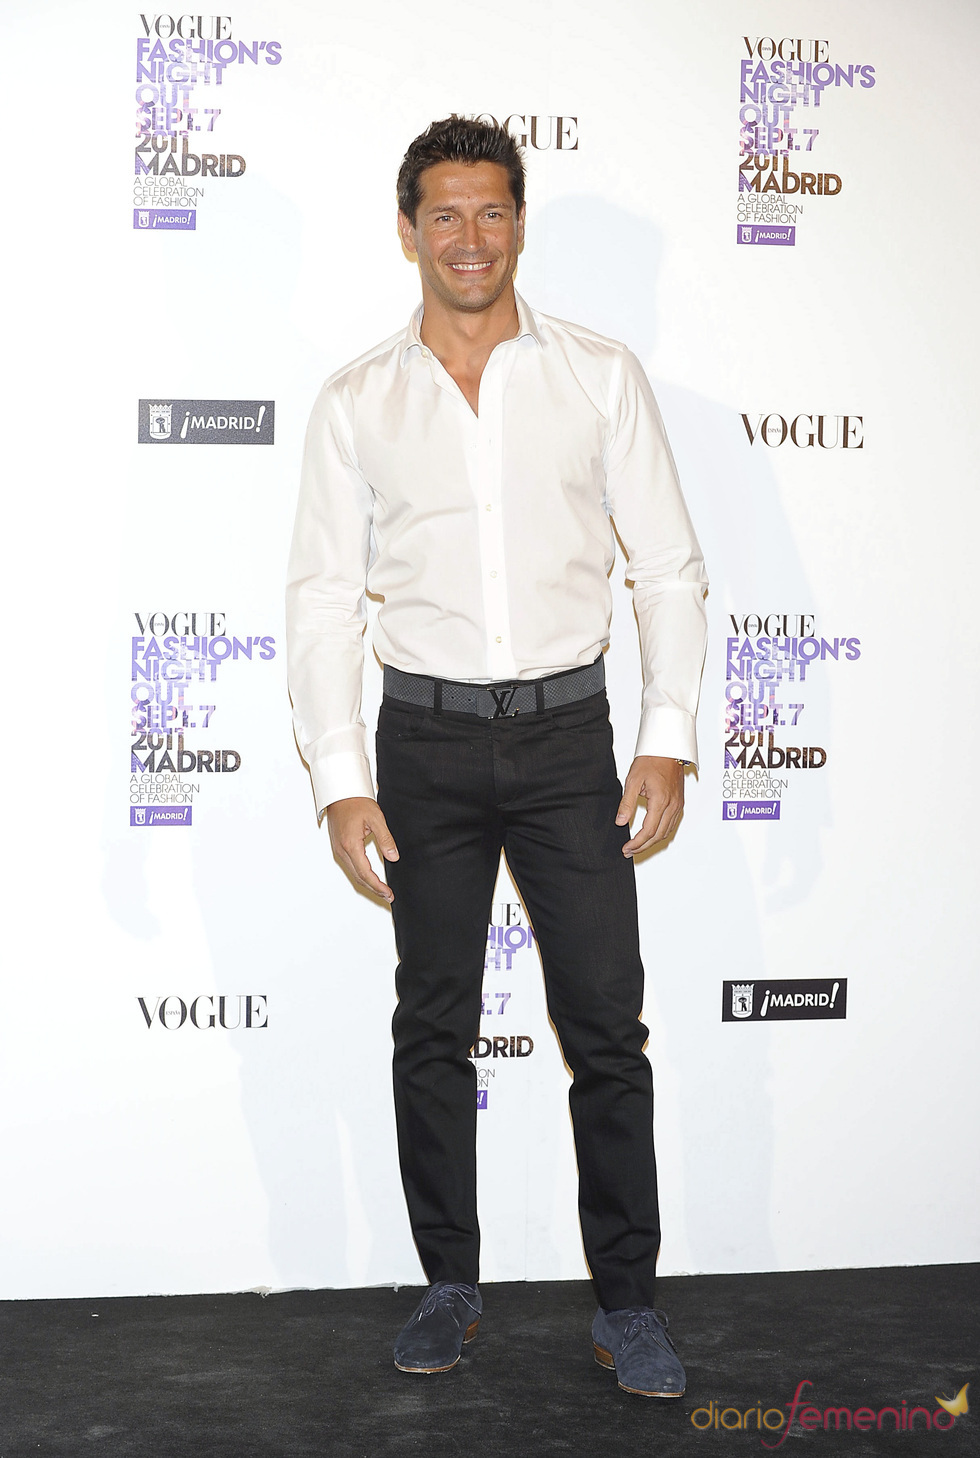 Jaime Cantizano durante la Vogue Fashion Night Out Madrid 2011